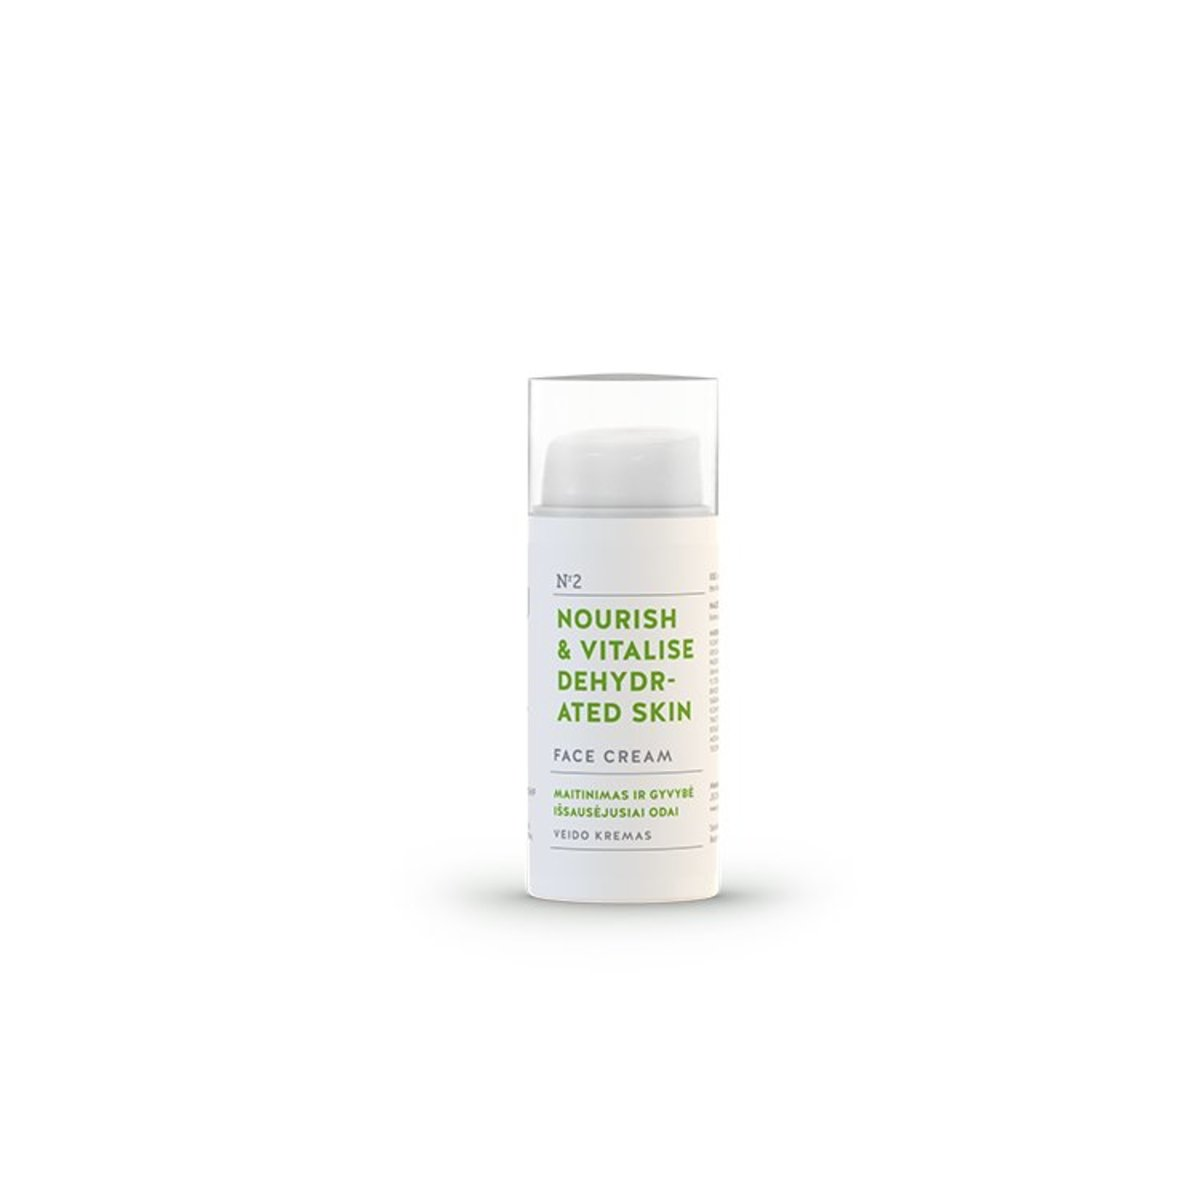 You and Oil Face Cream for Dehydrated Skin